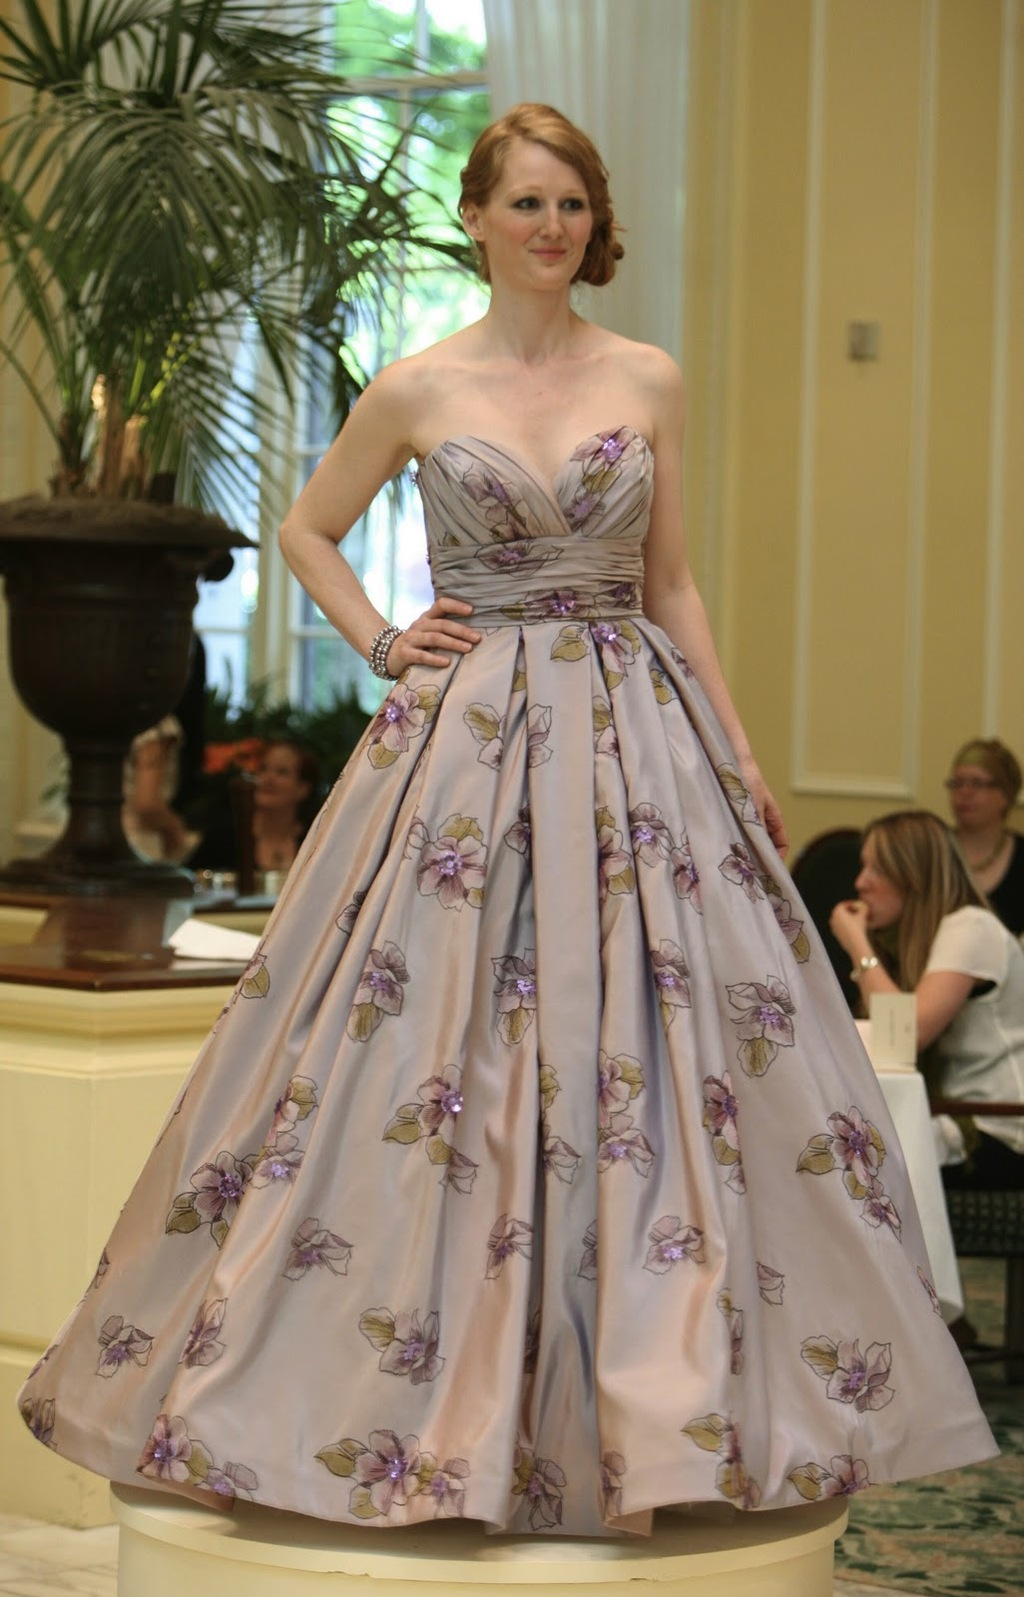 Gorgeous purple grey sweetheart neckline wedding dress with floral pattern